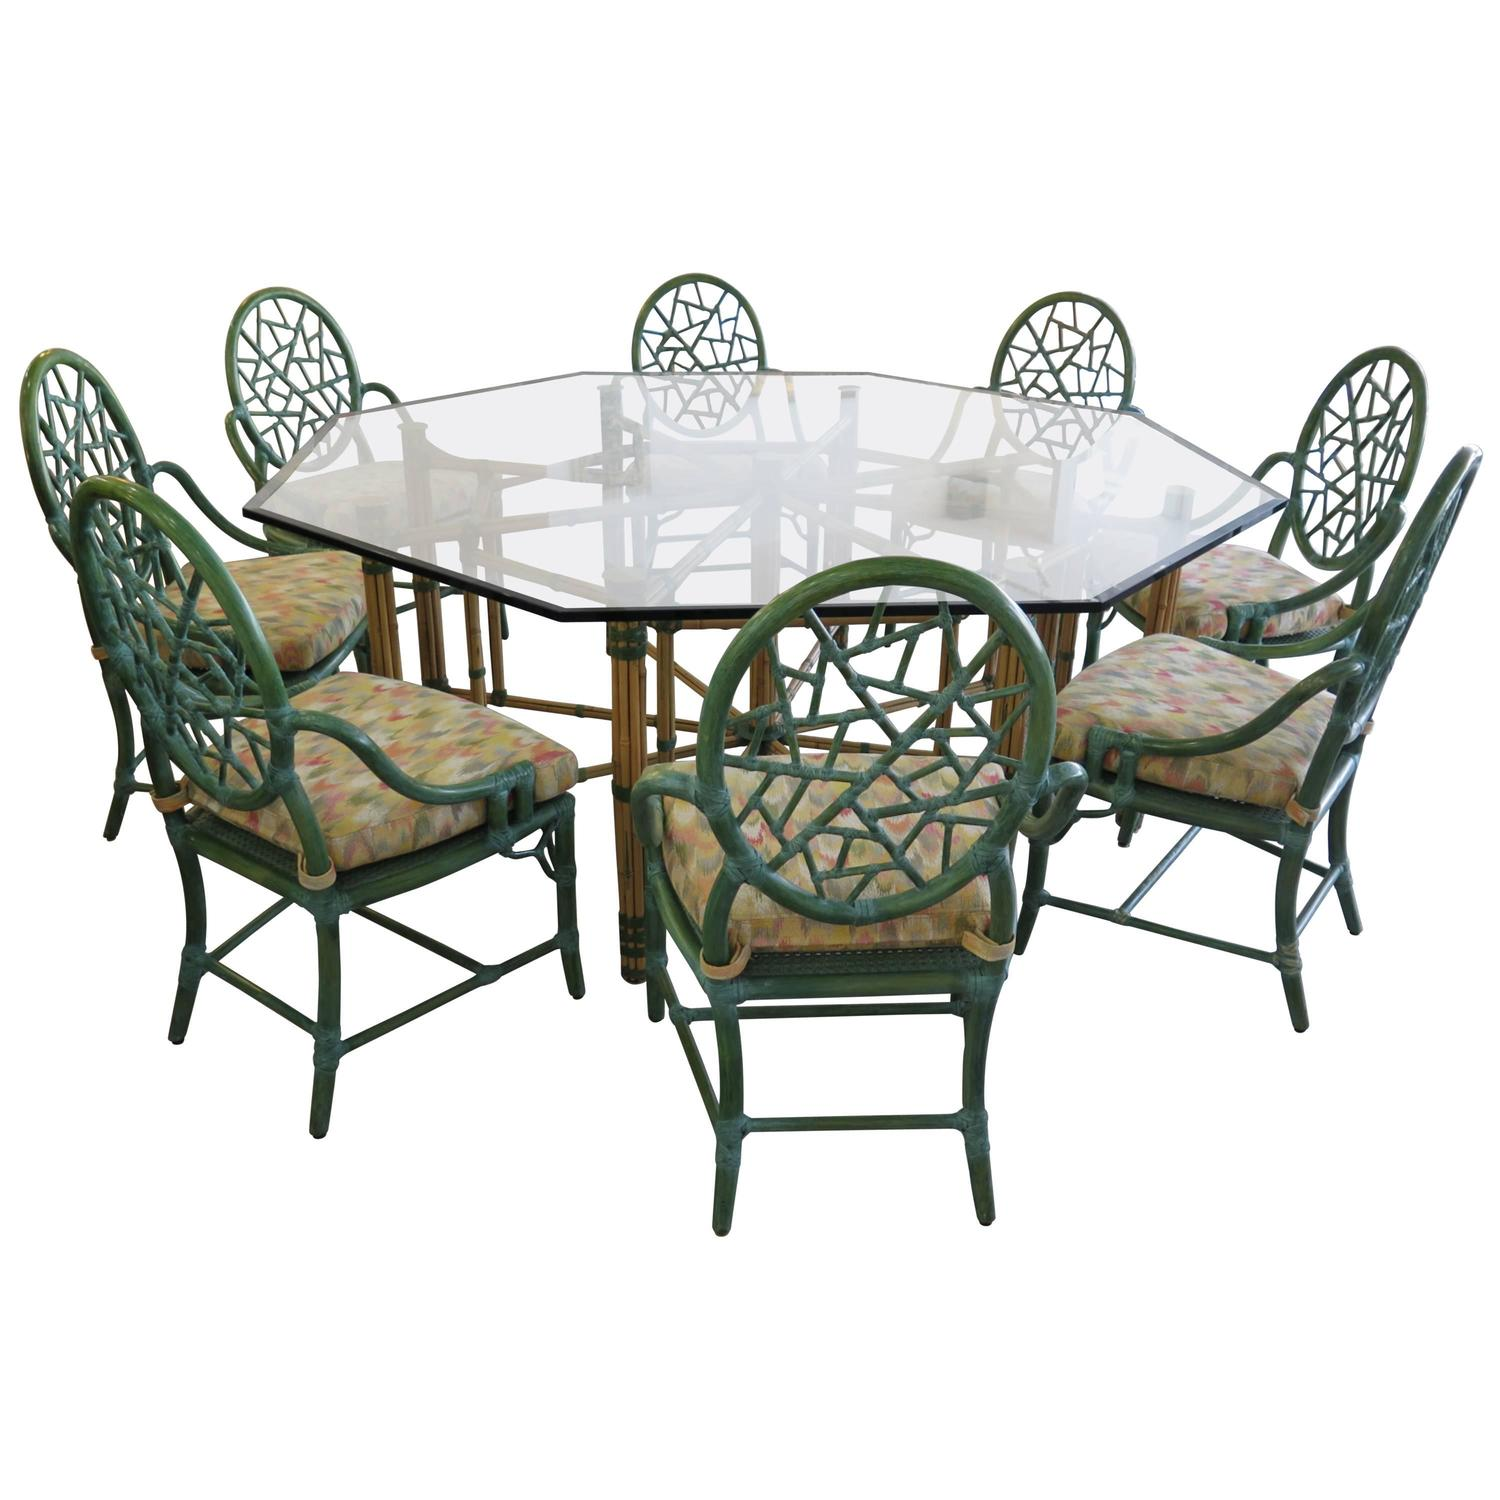 McGuire Dining Table and Eight Arm Chairs For Sale at 1stdibs : 3066062z from www.1stdibs.com size 1500 x 1500 jpeg 148kB